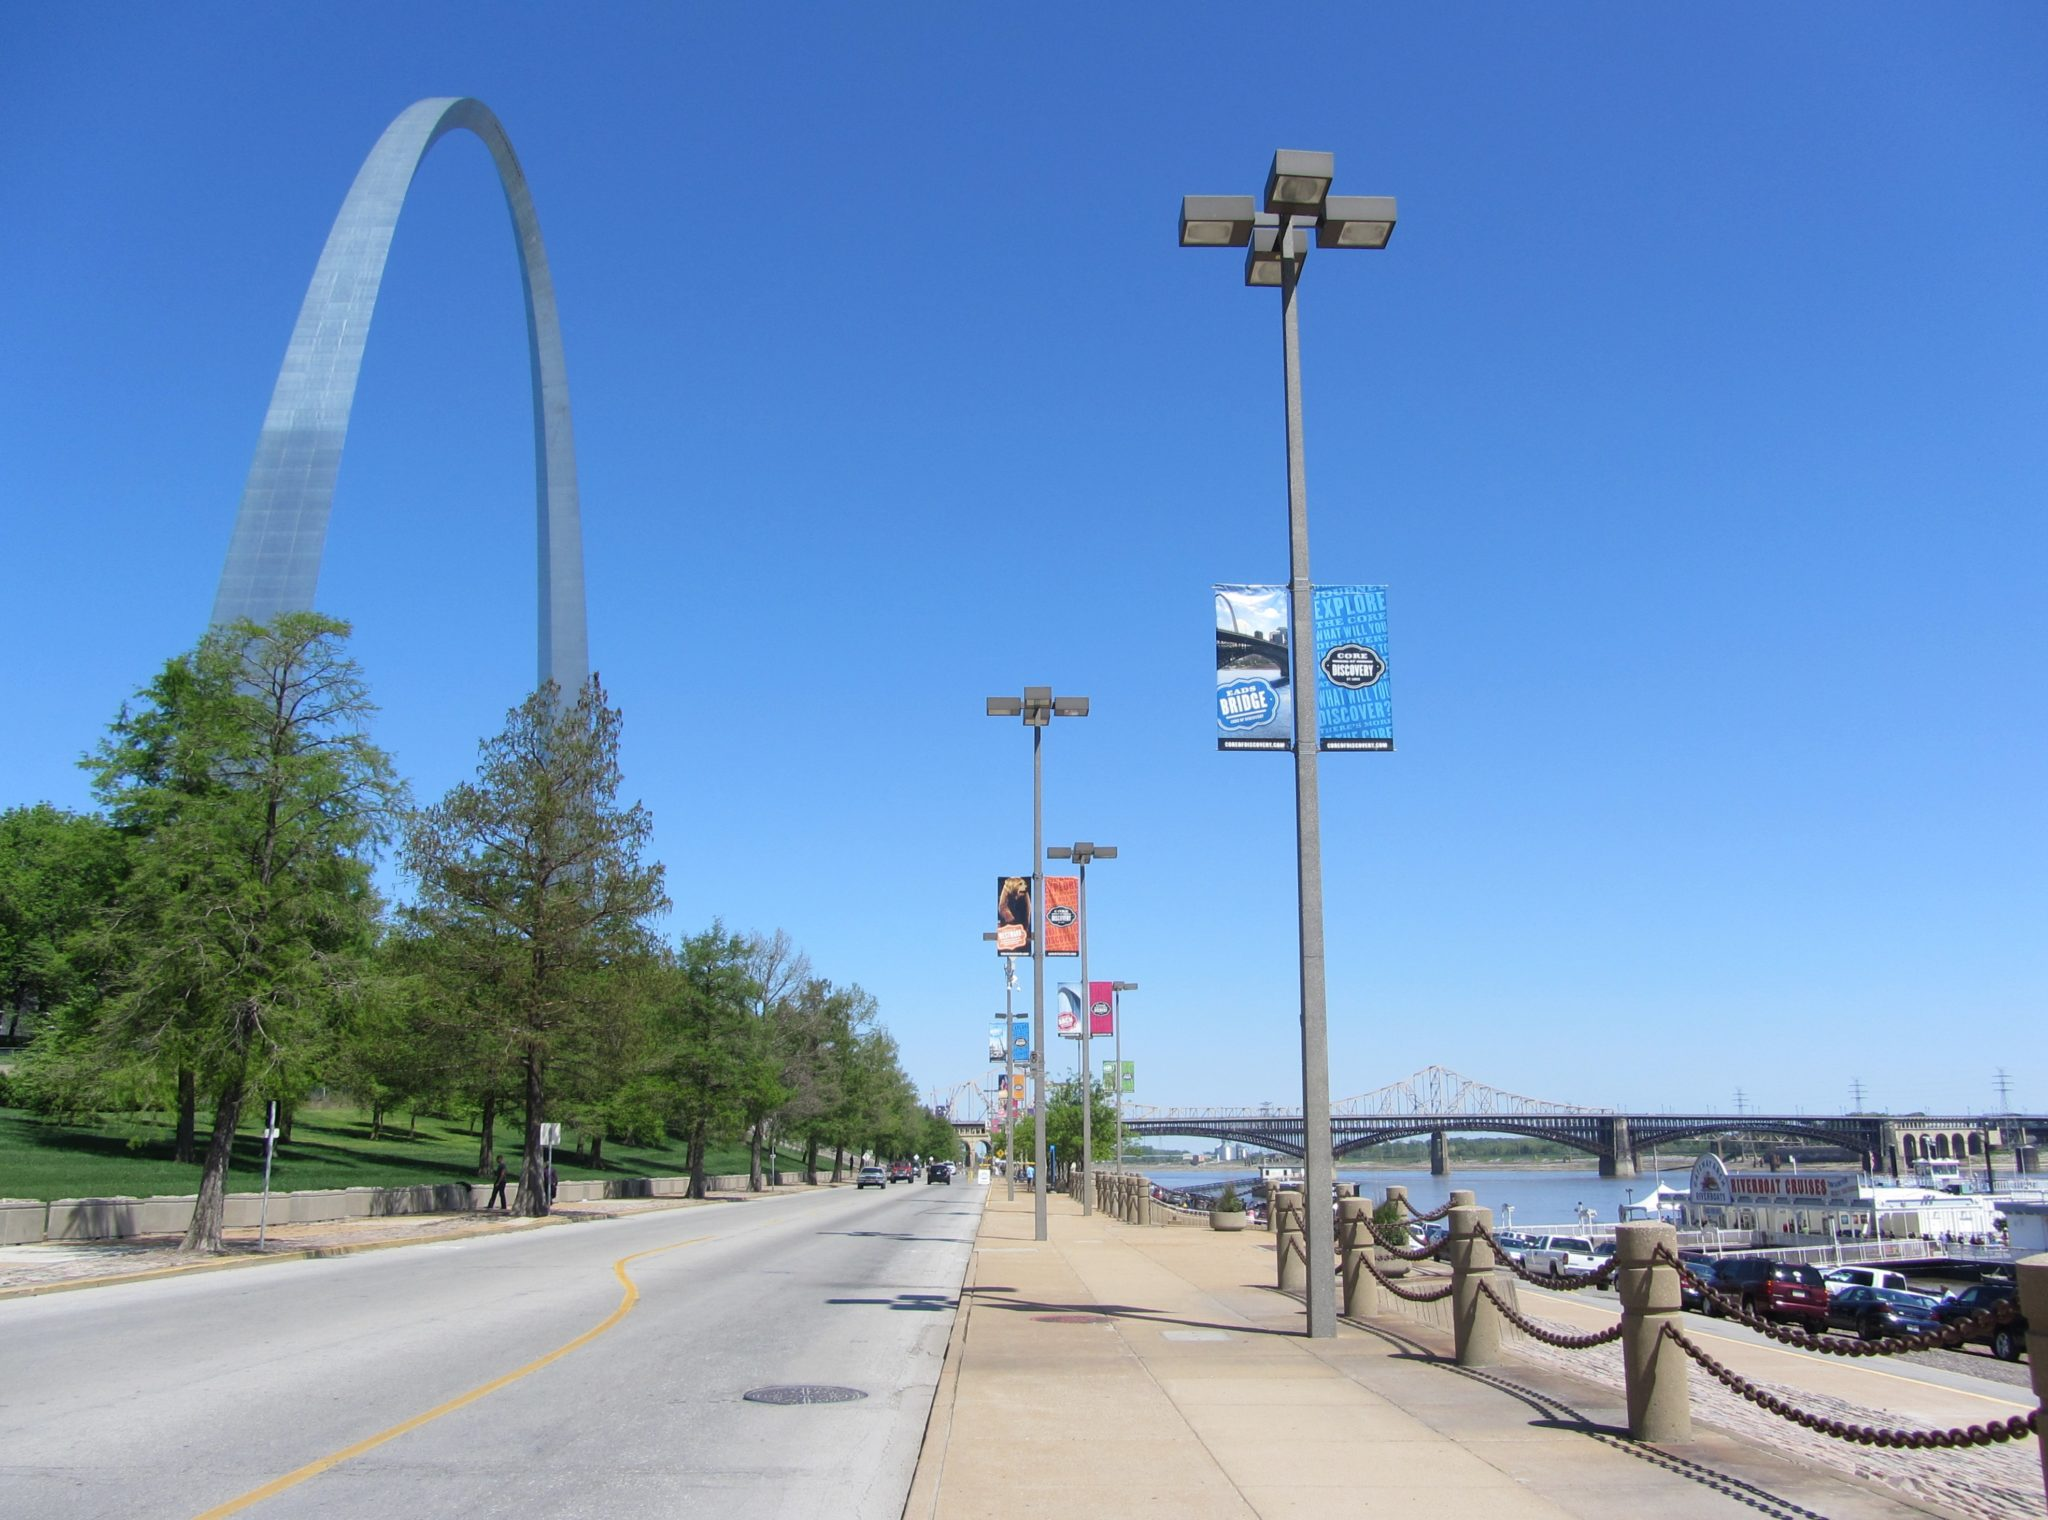 St. Louis in Pictures ~ Arch Upgrades Coming Soon